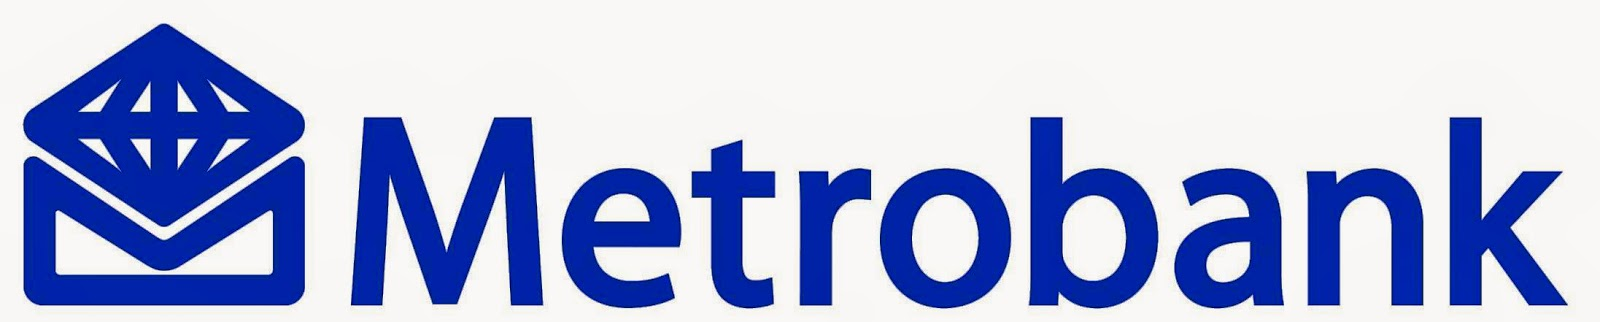 Metrobank Shop Shop Shop Promos Until February 2015